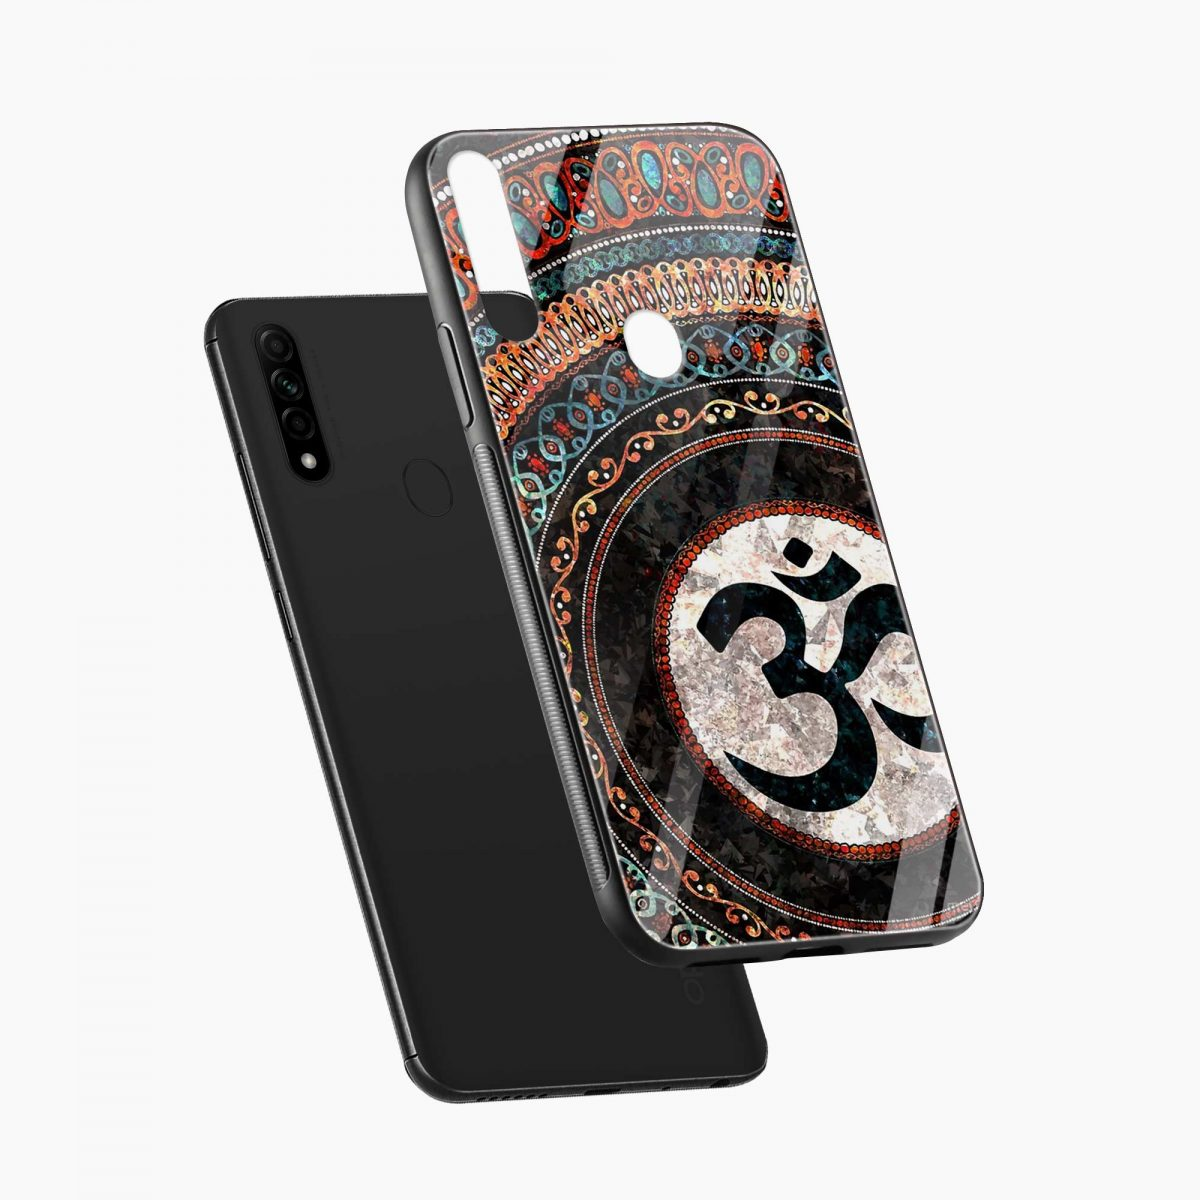 om glass diagonal view oppo a31 back cover